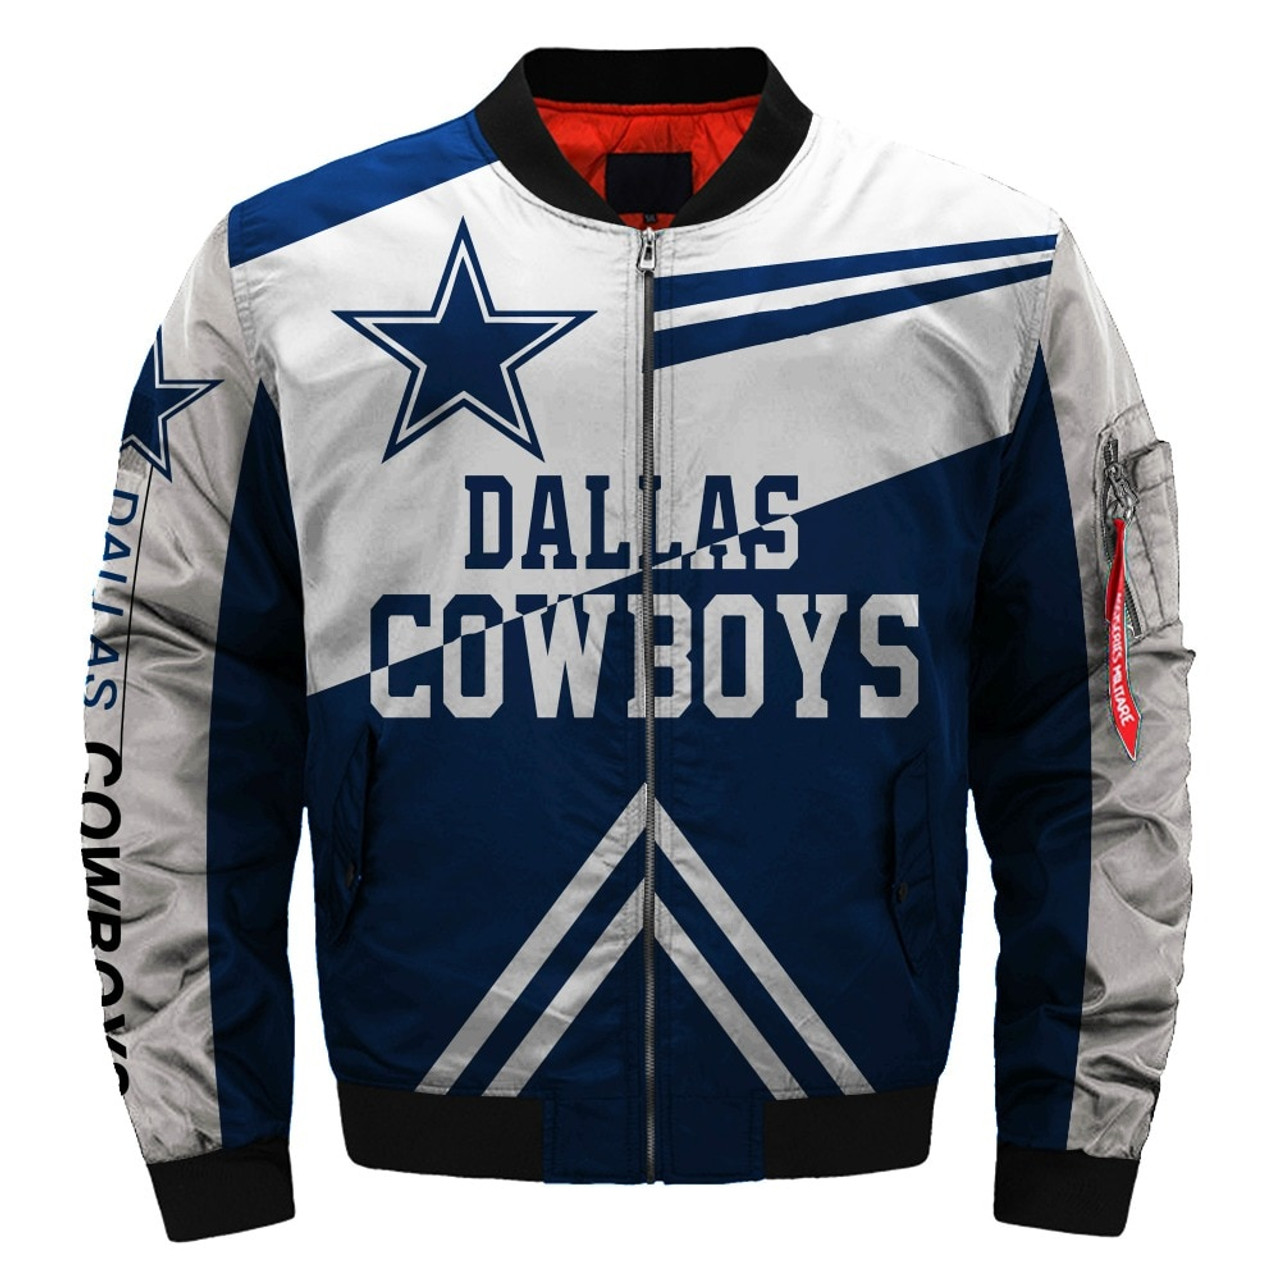 premium selection a4d9d 15518 **(OFFICIALLY-LICENSED-N.F.L.DALLAS-COWBOYS-JACKETS/CLASSIC-COWBOYS-TEAM-COLORS  & OFFICIAL-COWBOYS-LOGOS,BOMBER/MA-1 ...